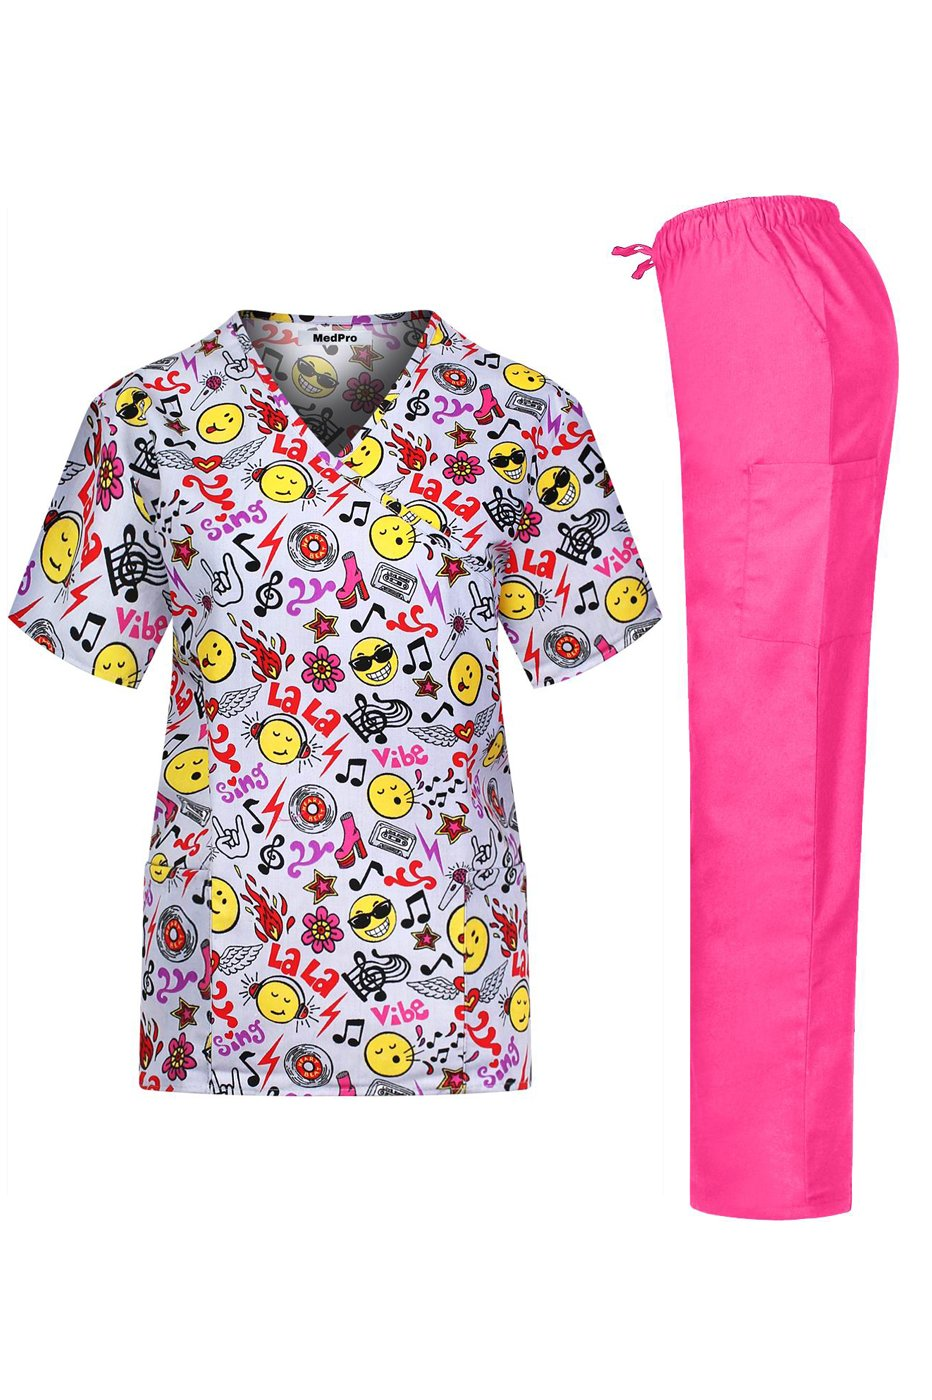 MedPro Women's Medical Scrub Set with Printed Top and Cargo Pants Yellow Pink 2XL(9003-1188GR)